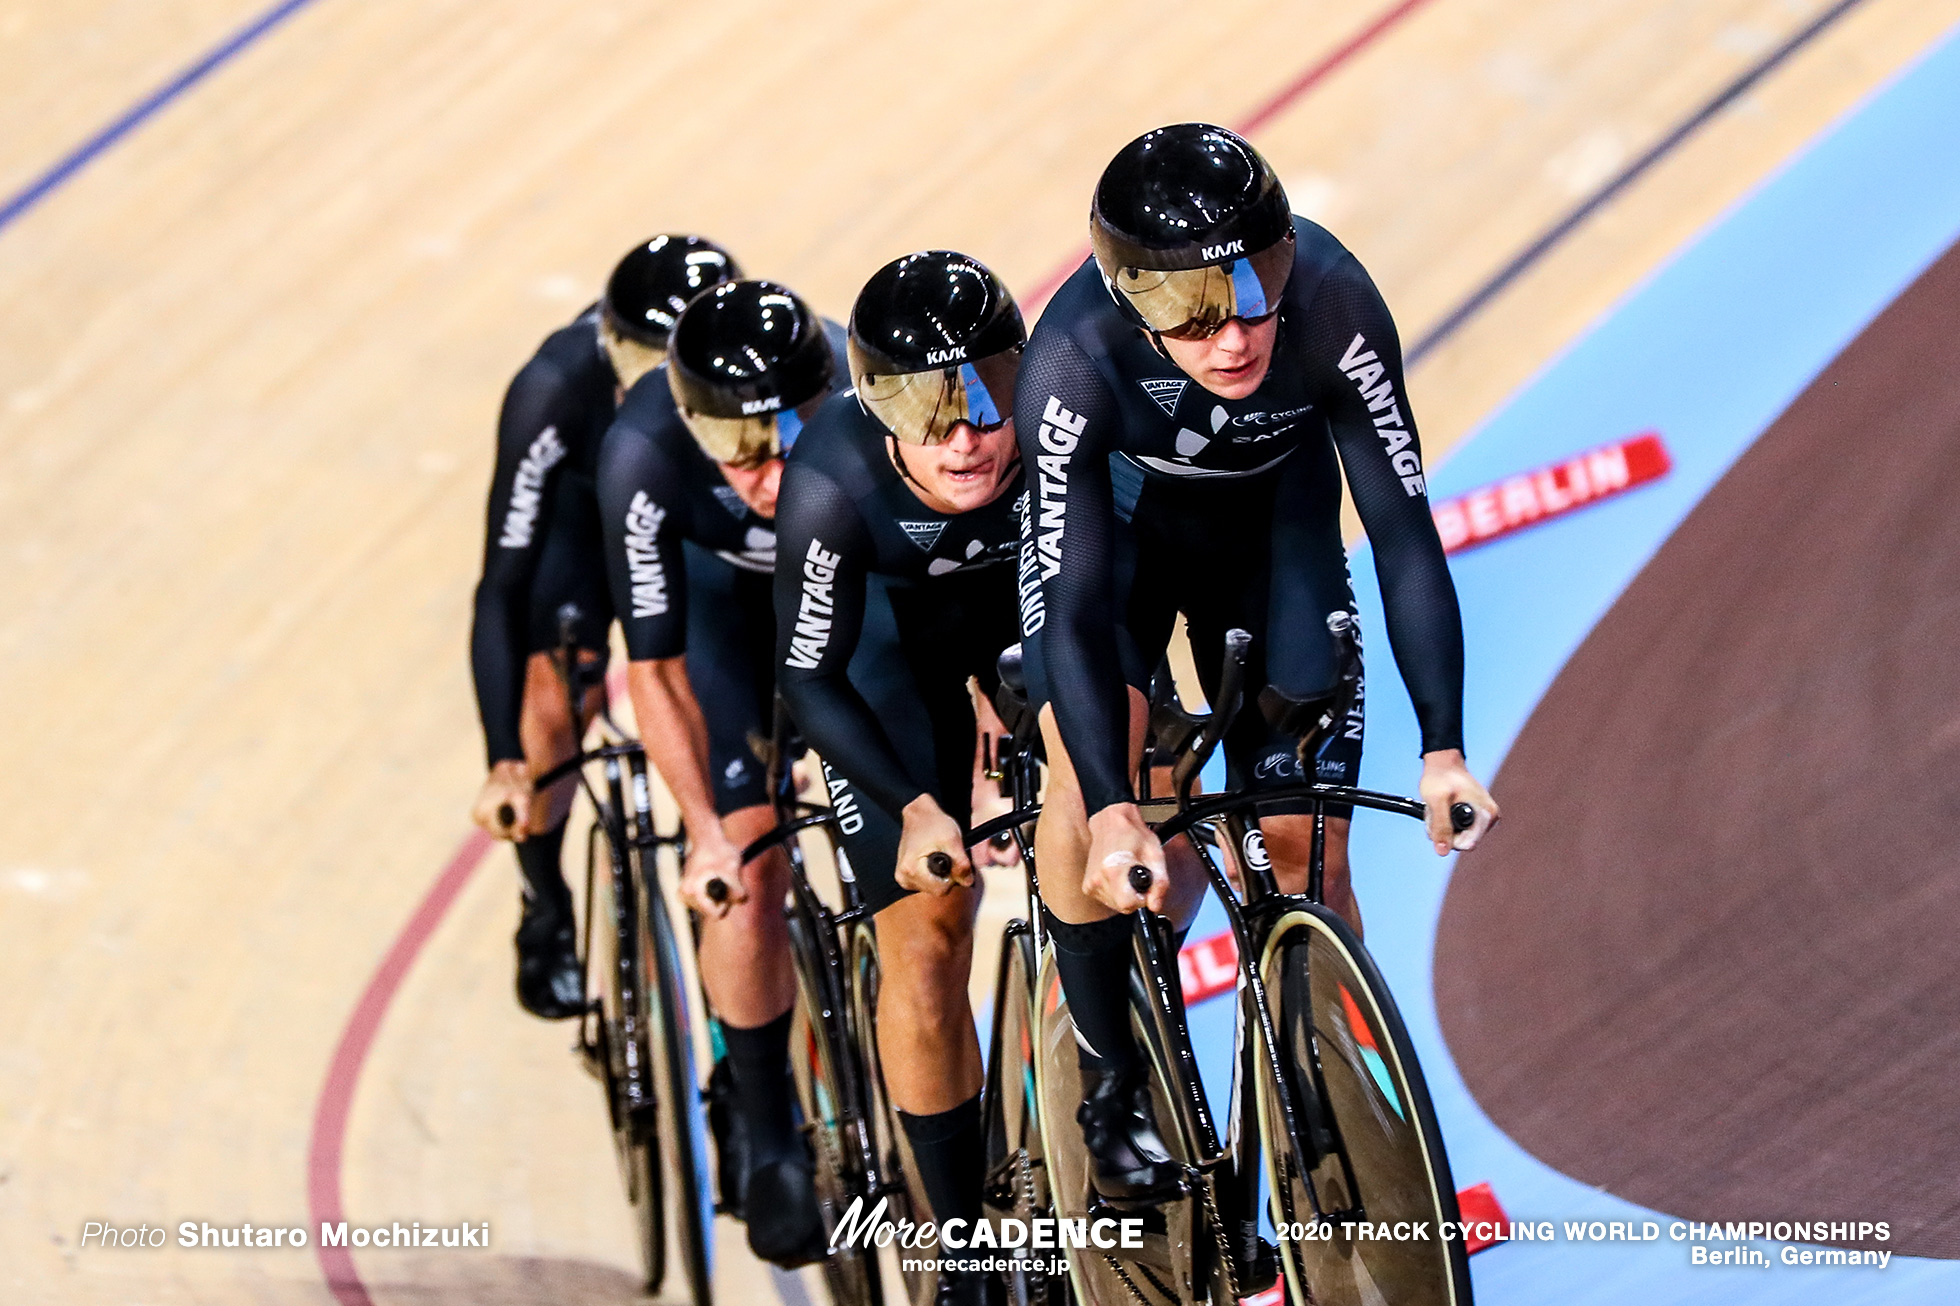 Final / Men's Team Pursuit / 2020 Track Cycling World Championships